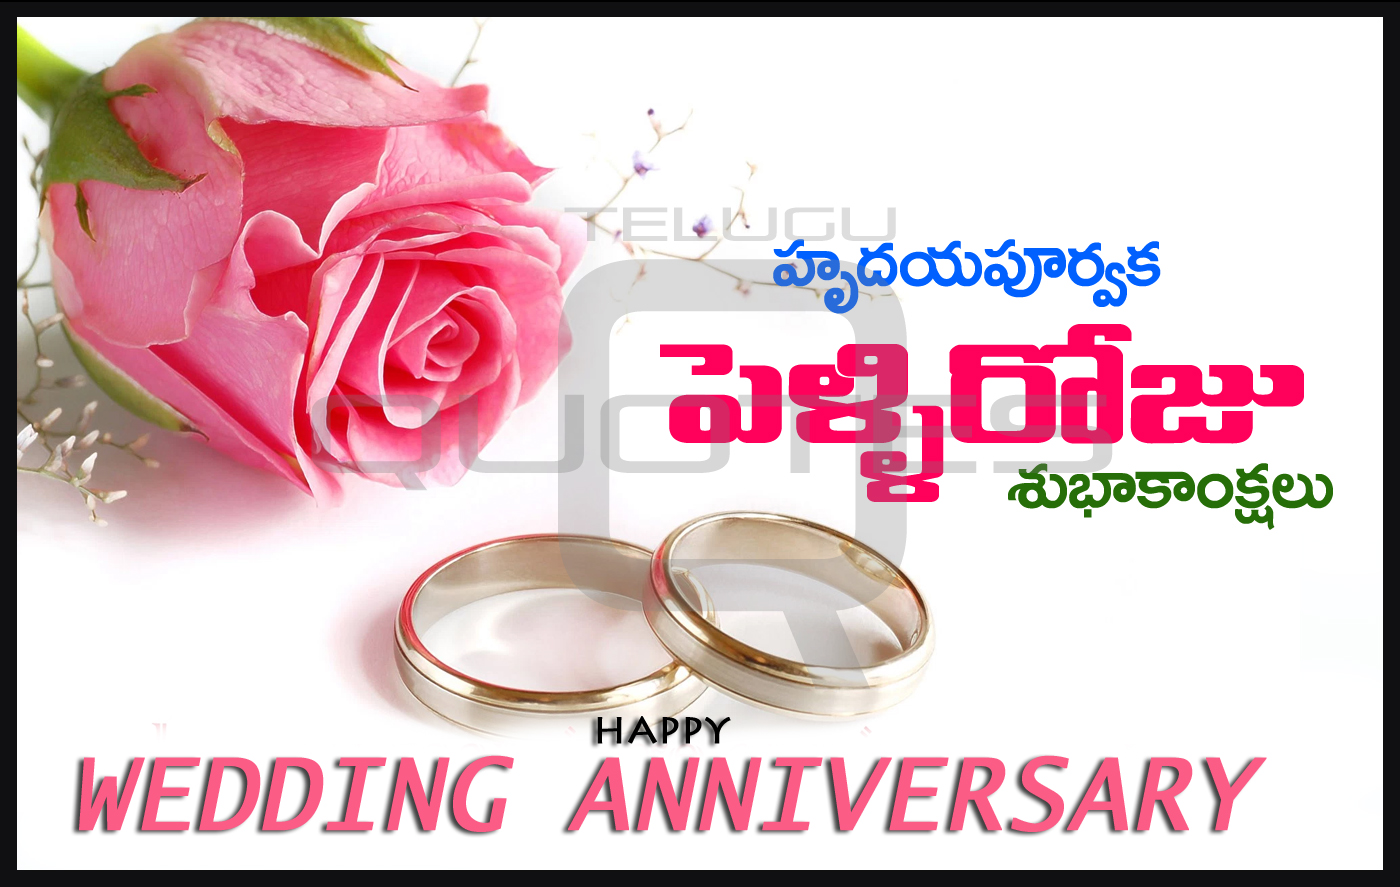 Best telugu marriage anniversary images top wedding anniversary happy wedding telugu quotes images wedding greetings life kristyandbryce Image collections